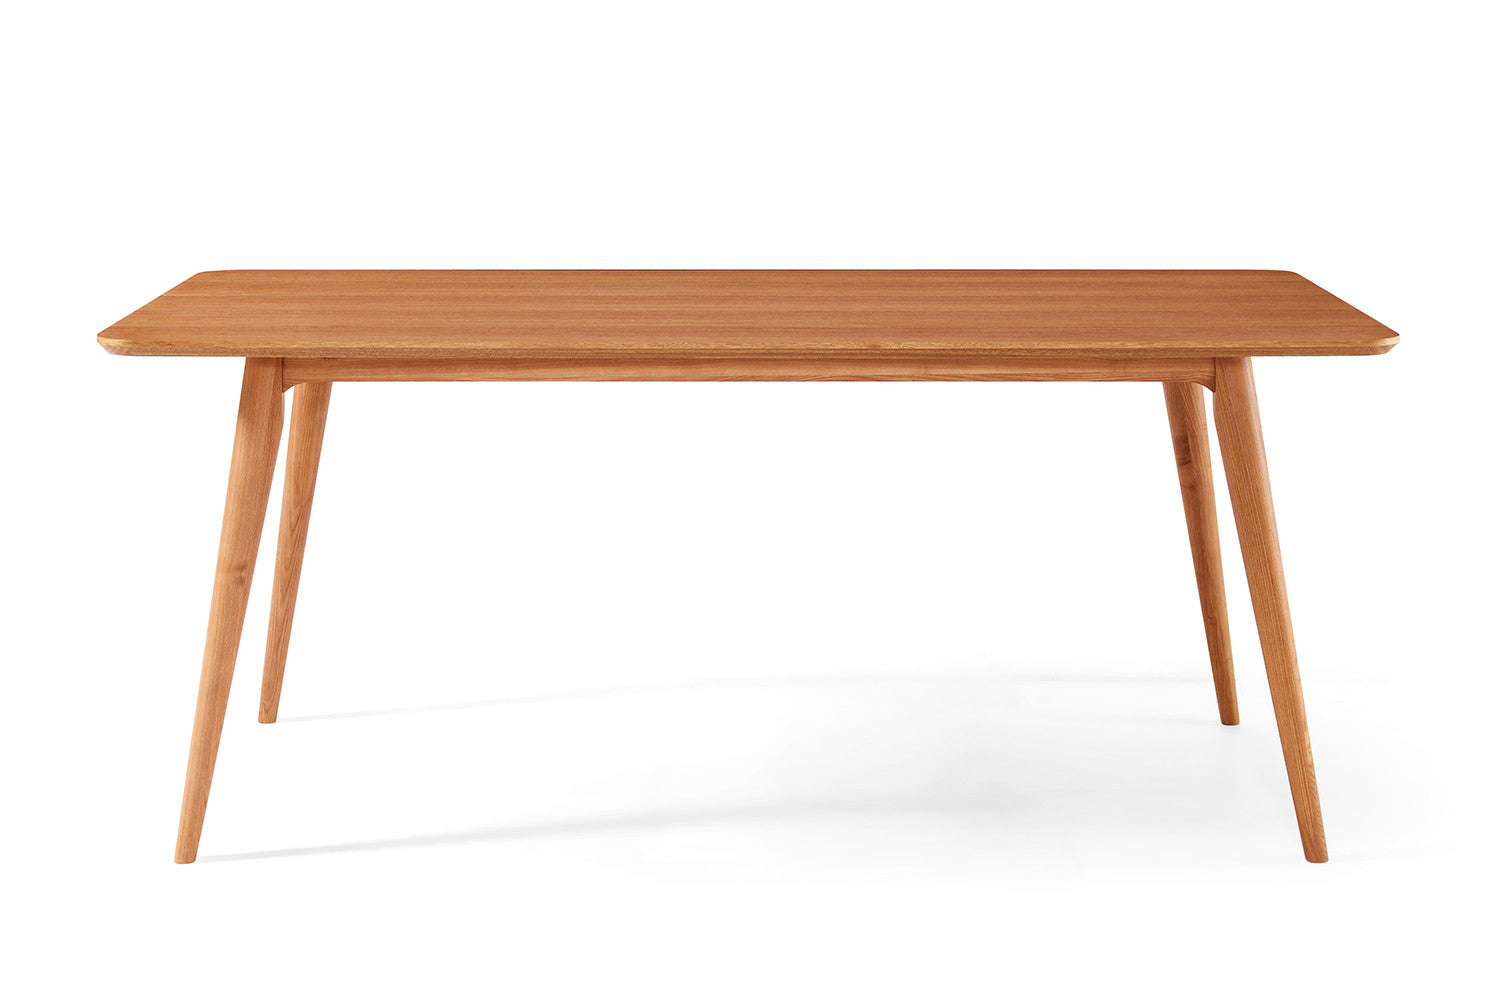 Table de salle manger design en bois julia dewarens for Table a manger scandinave bois